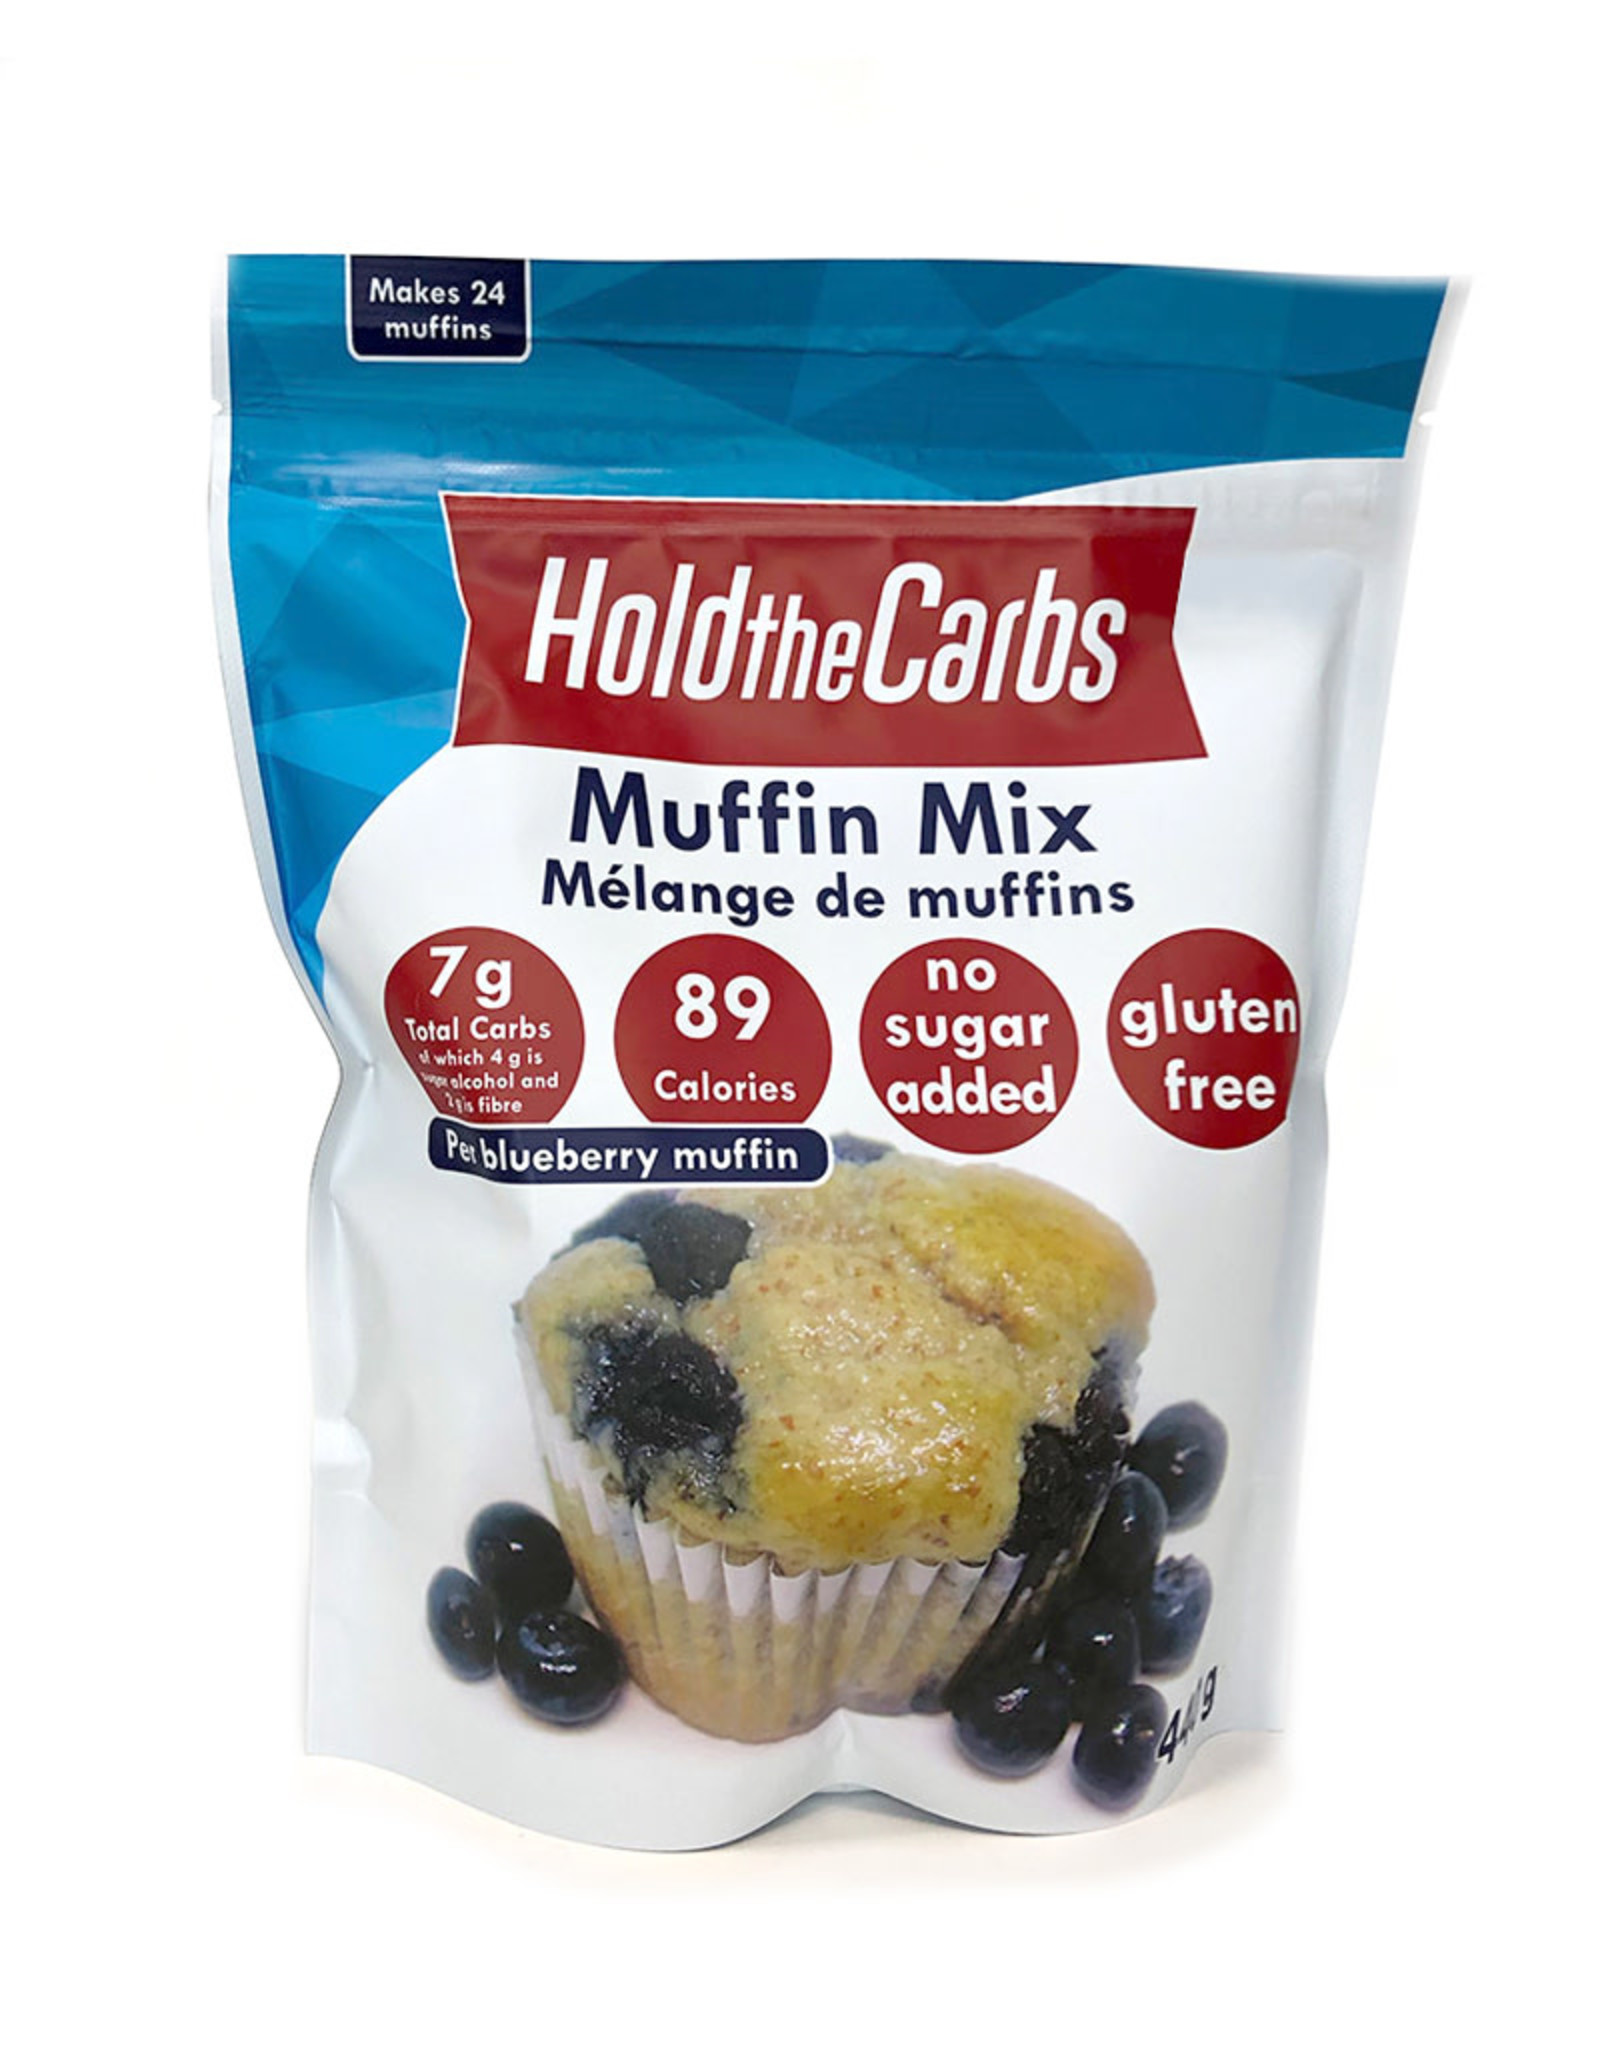 Hold the Carbs Hold the Carbs - Muffin Mix, with Sucralose (Large)